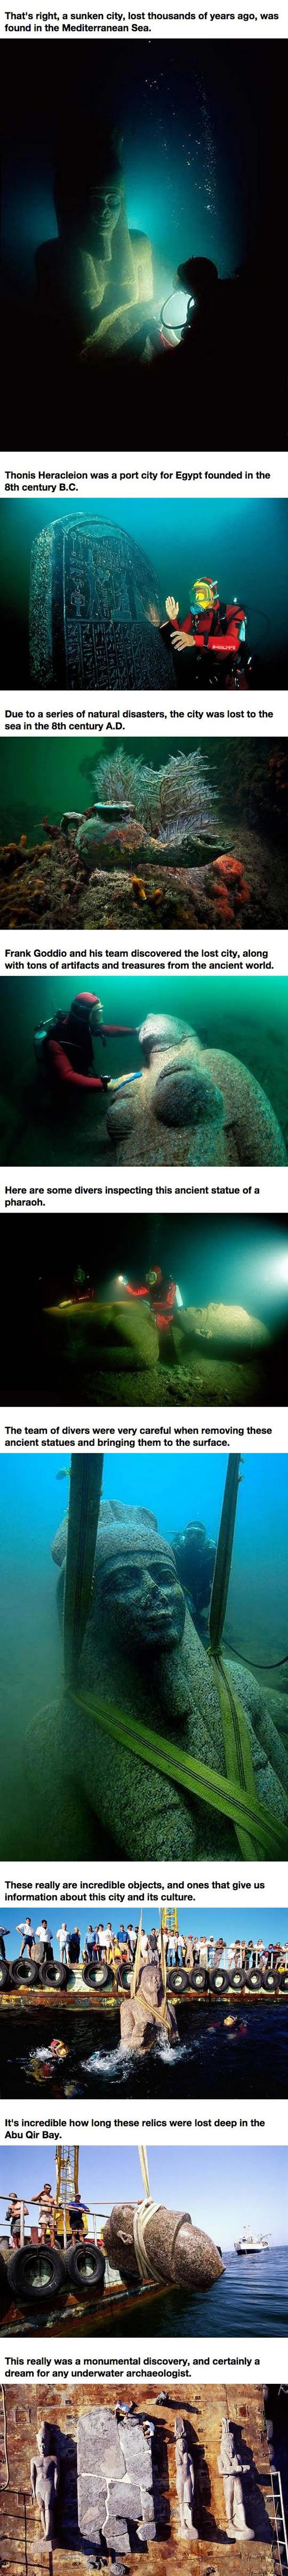 A Lost City Under The Sea. I remember reading about this; so cool.